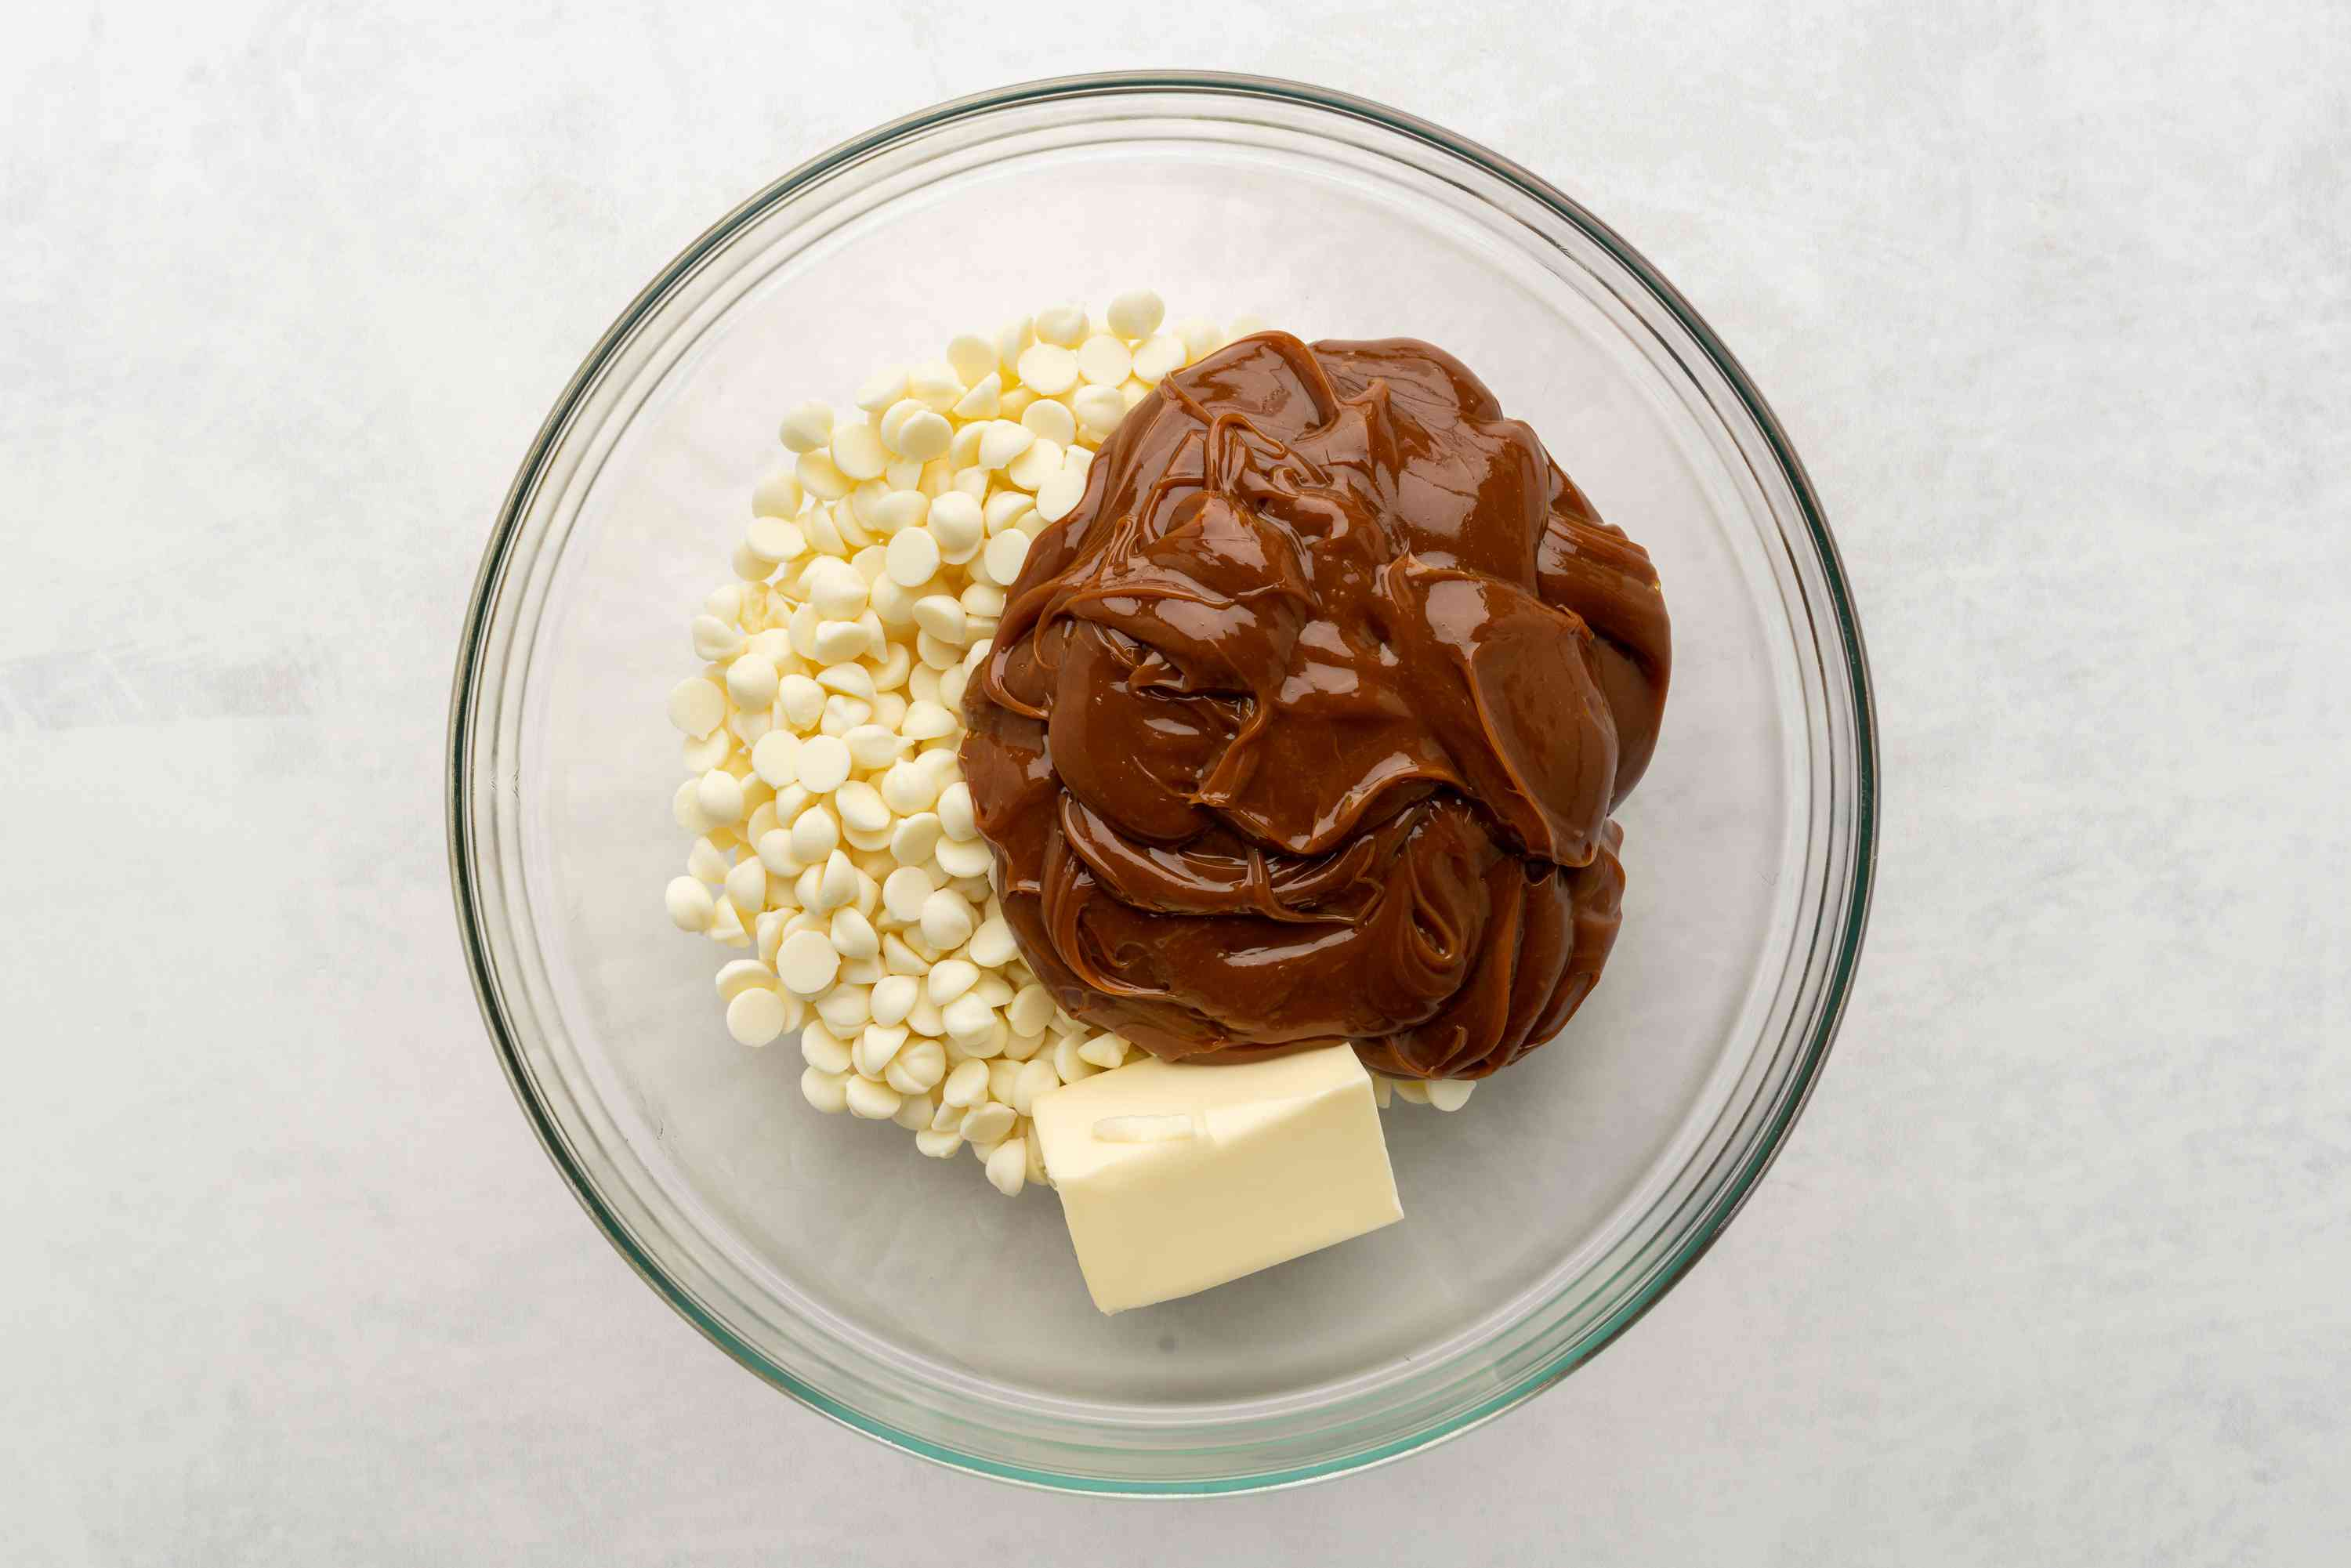 white chocolate chips, dulce de leche, and butter in a bowl